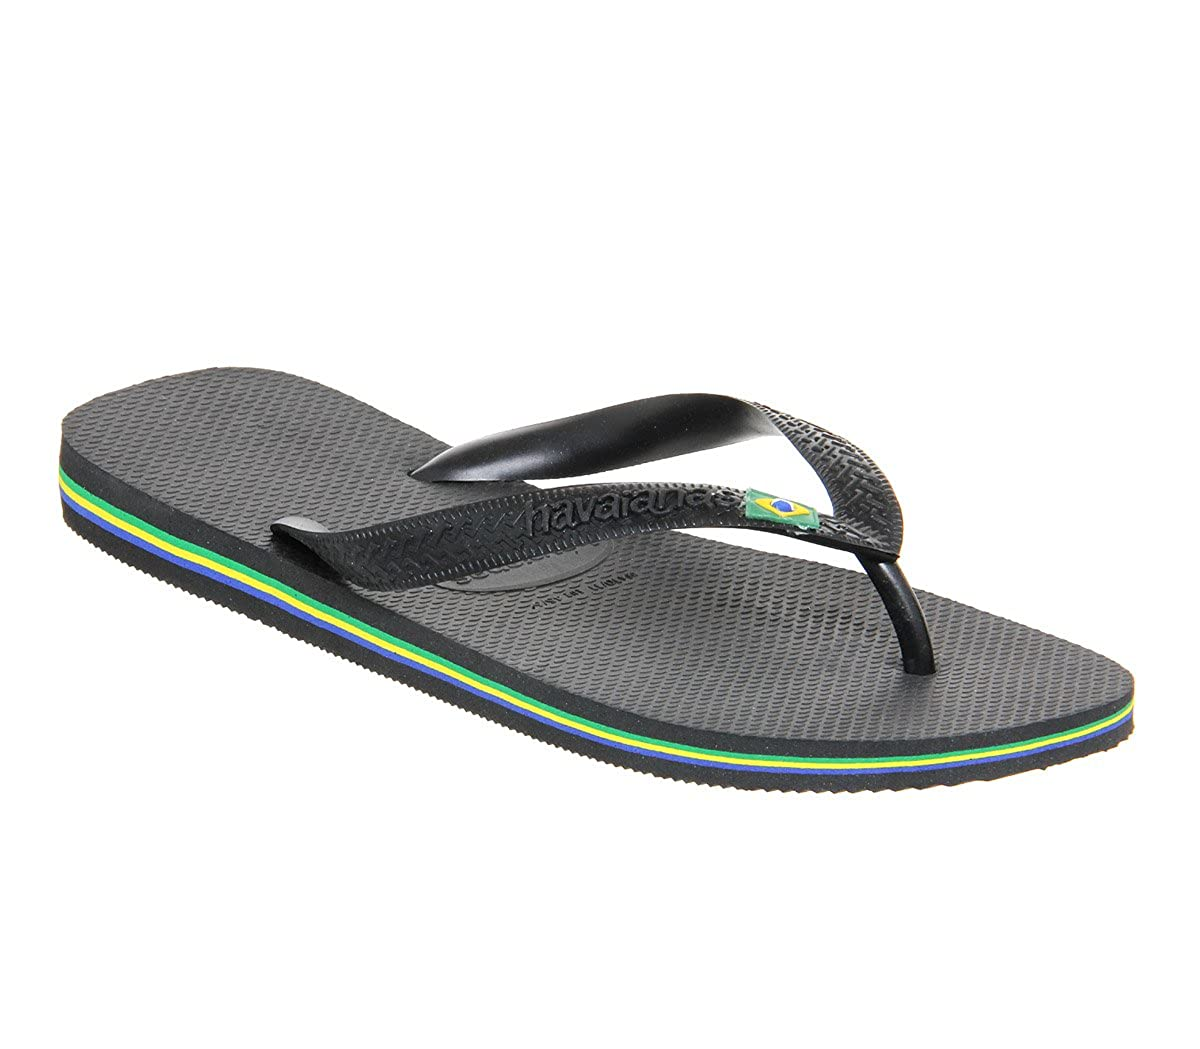 3a0d803369f192 Havaianas Brazil Flip-flop Black Rubber - Large UK  Amazon.co.uk  Shoes    Bags